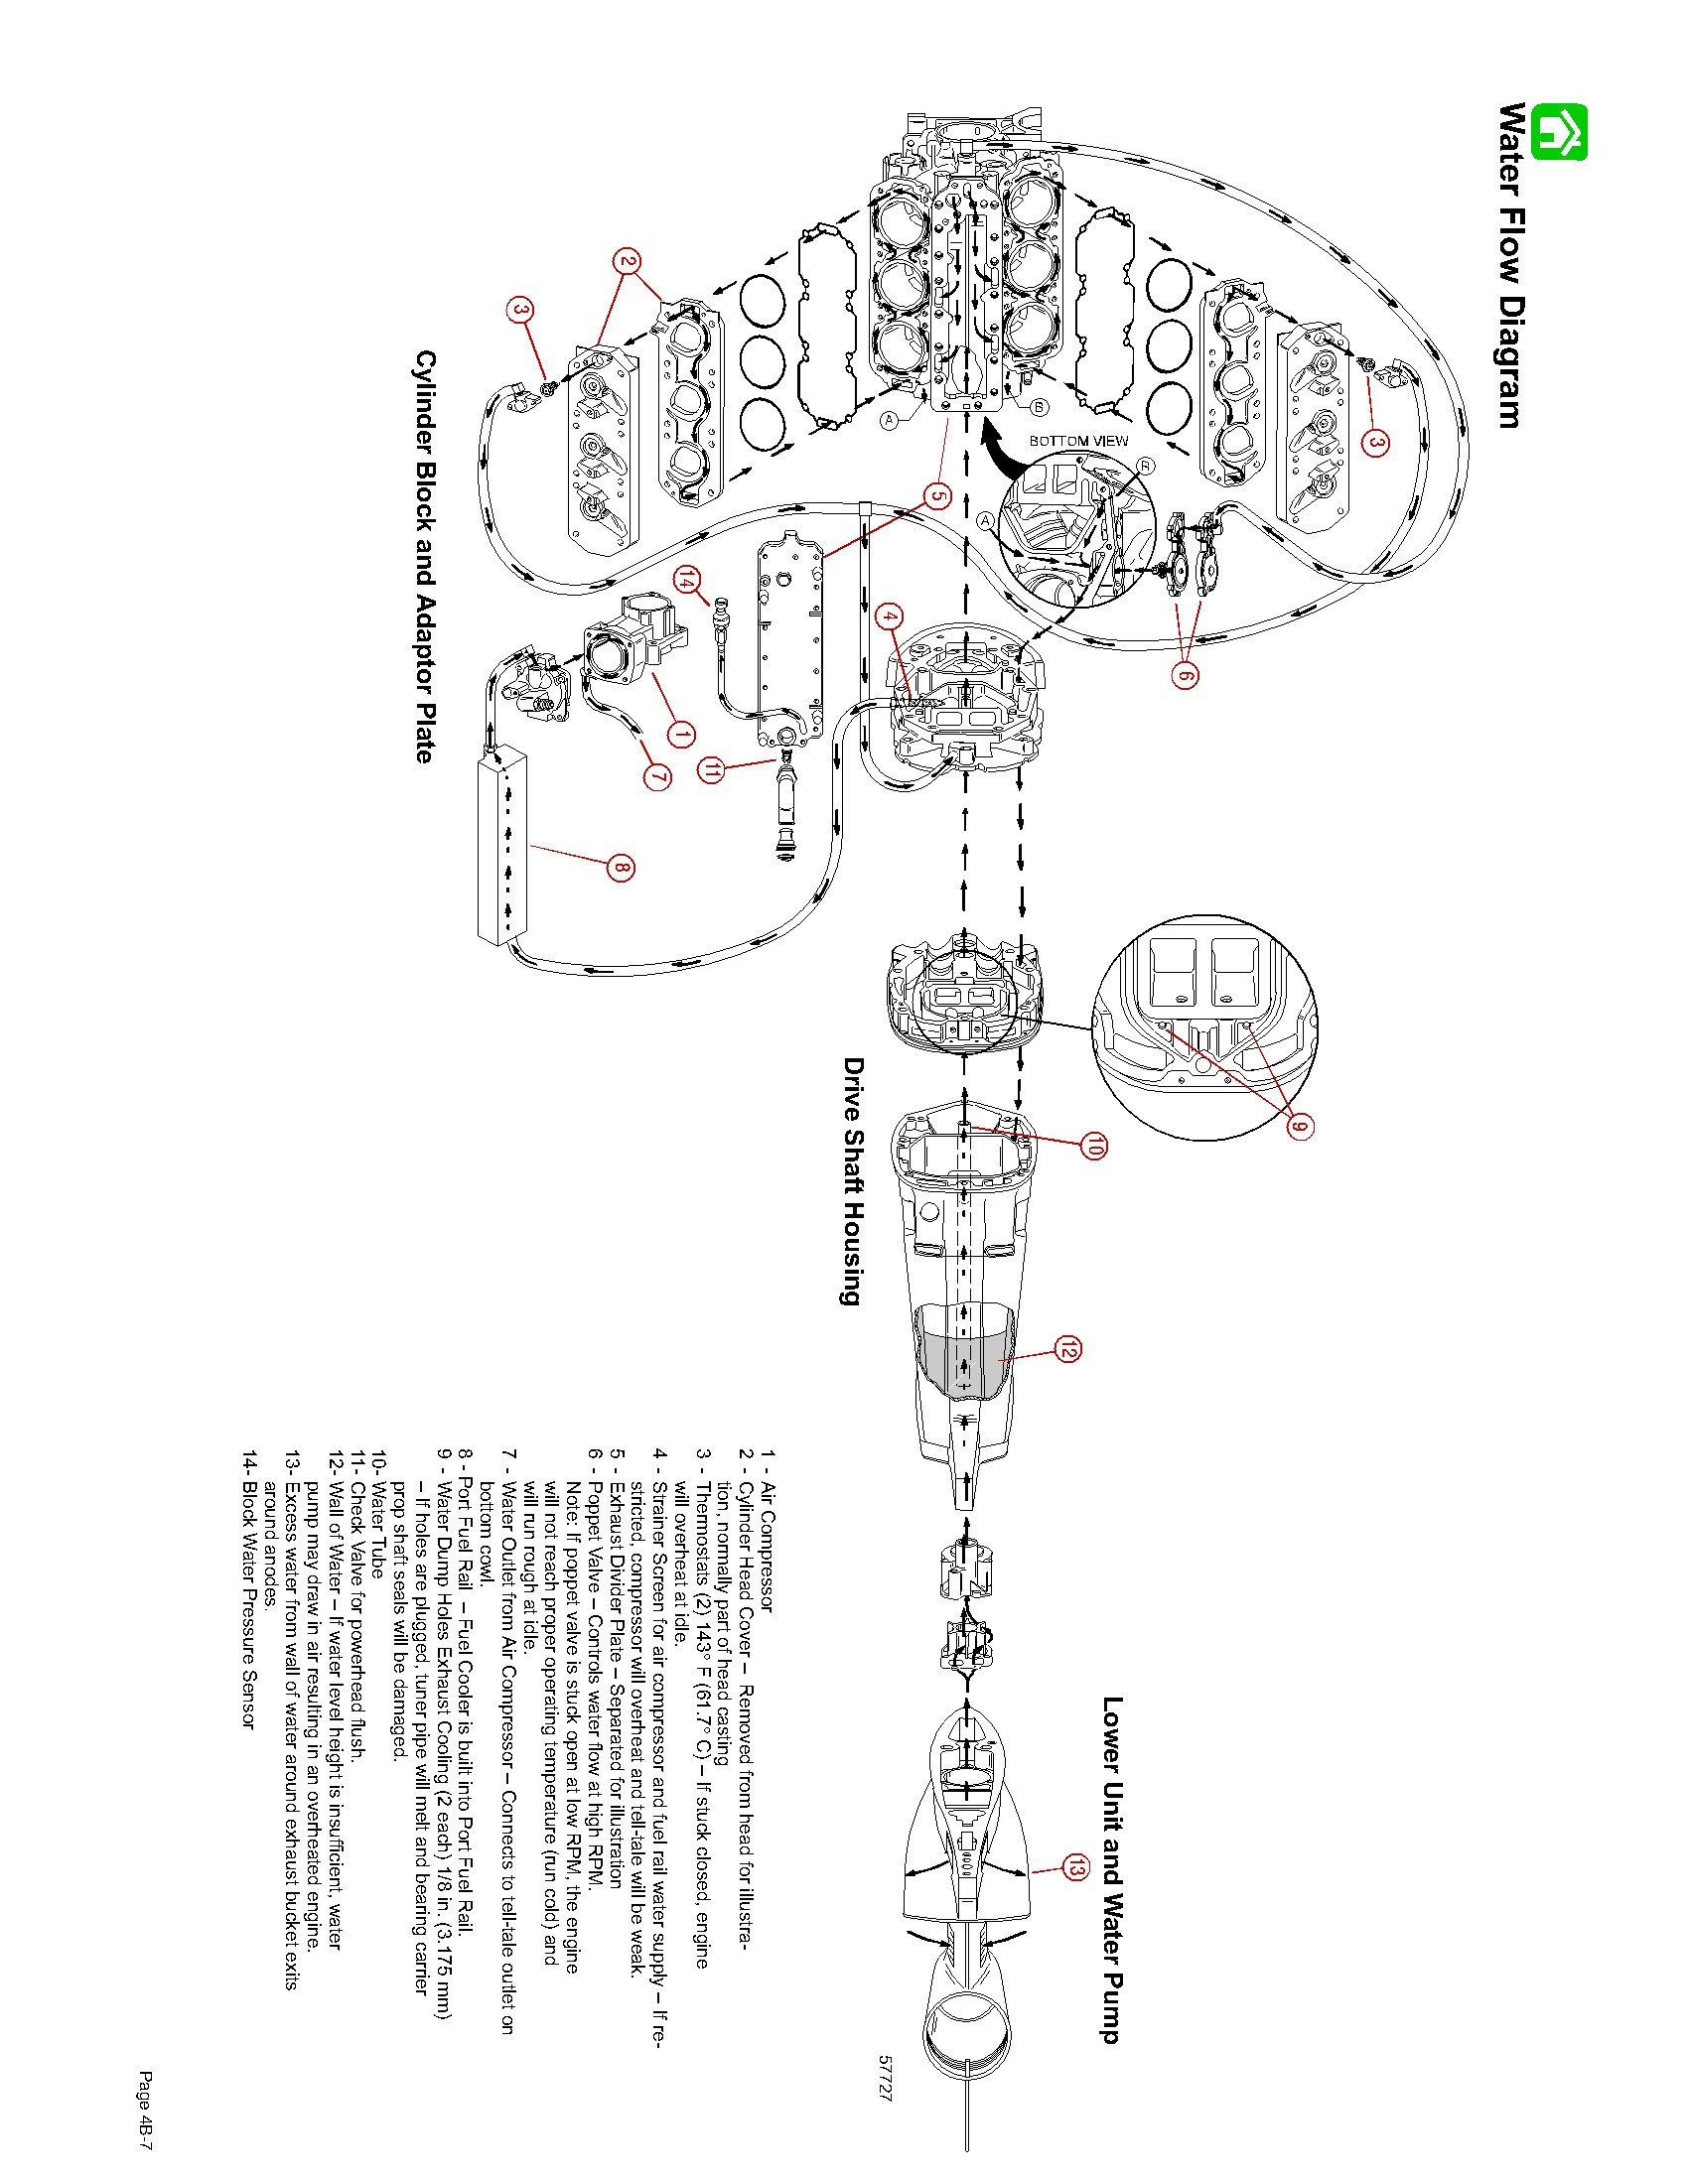 wiring diagram 1999 mercury outboard with 6v3t6 2006 150 Mercury Optimax Loud Constant Alarm on Harley Davidson Fuel Pump Fuse Location moreover Stratos Boat Wiring Harness moreover 6hcxz 2010 60 Hp Mercury Big Foot 4 Stroke Engine likewise 8a62z Cant Select Defrost 98 Avalon likewise Virago Hitachi Carburetors.